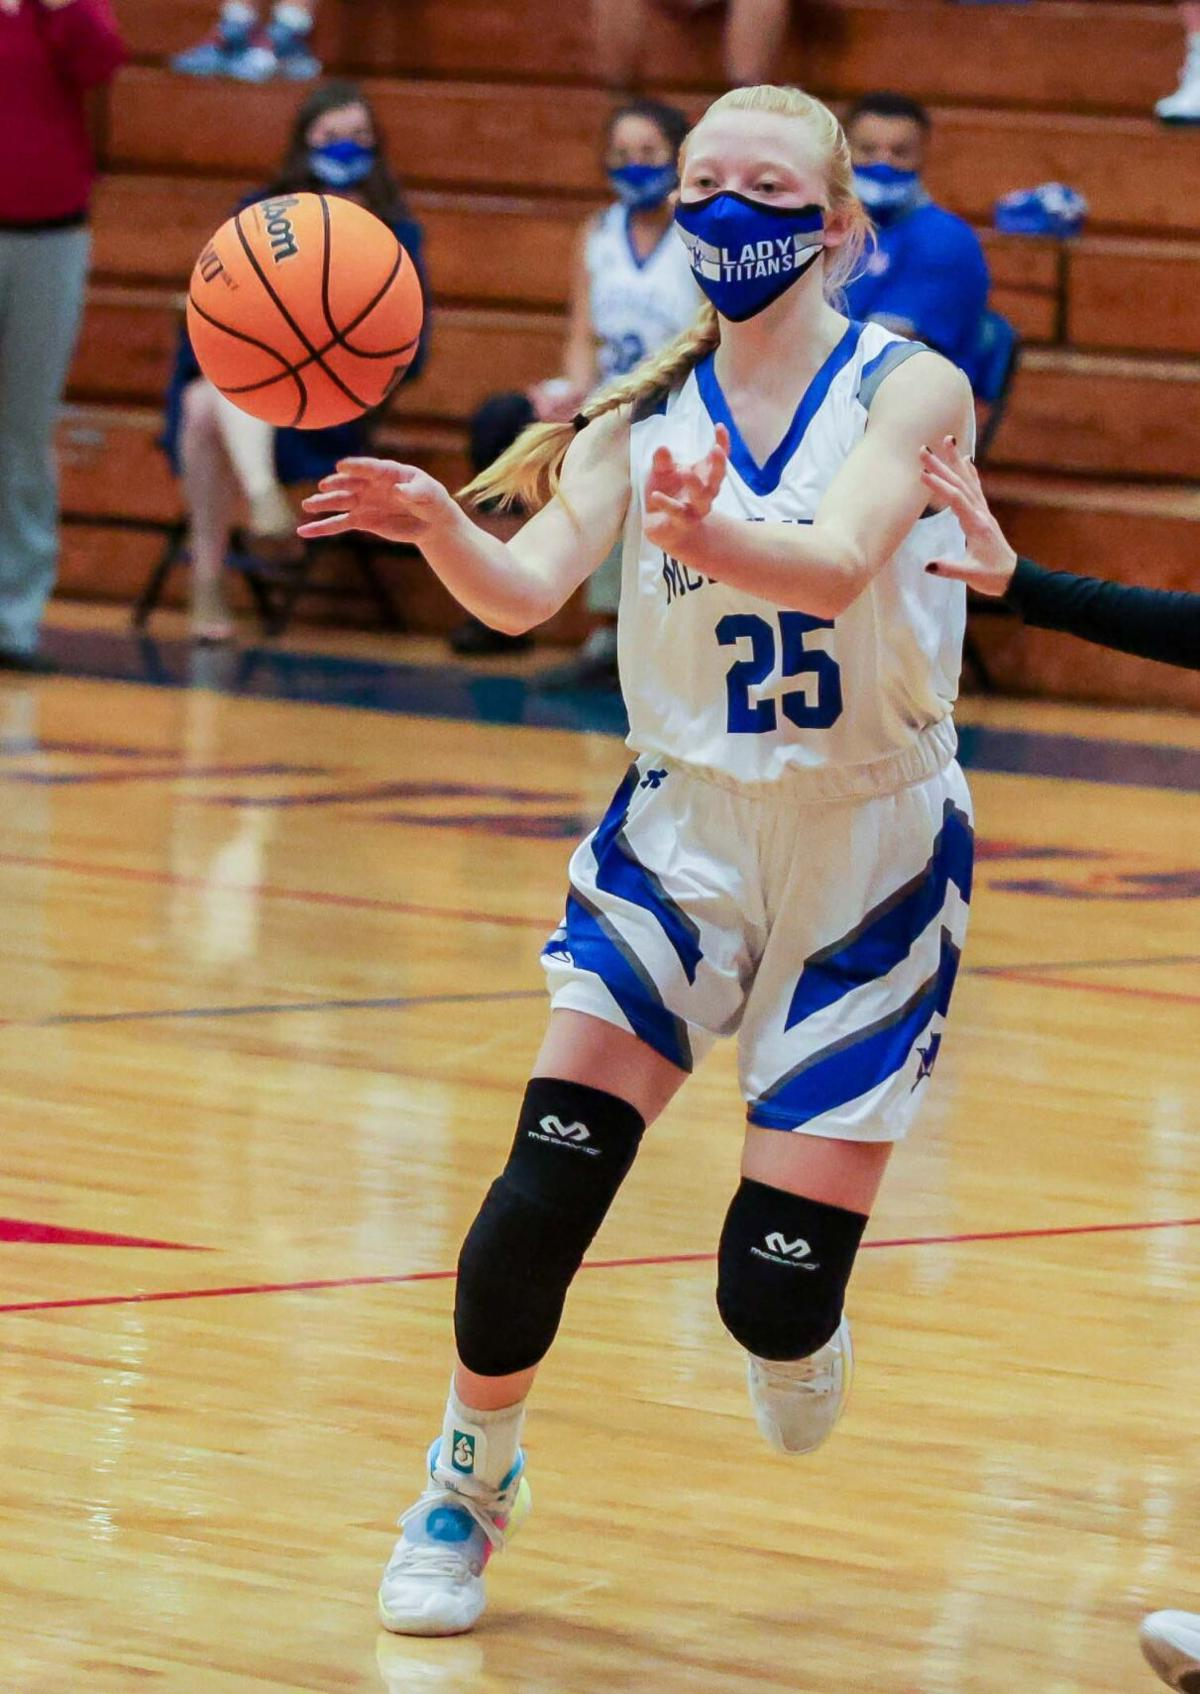 Lady Titans outlast Watauga for 2nd straight win